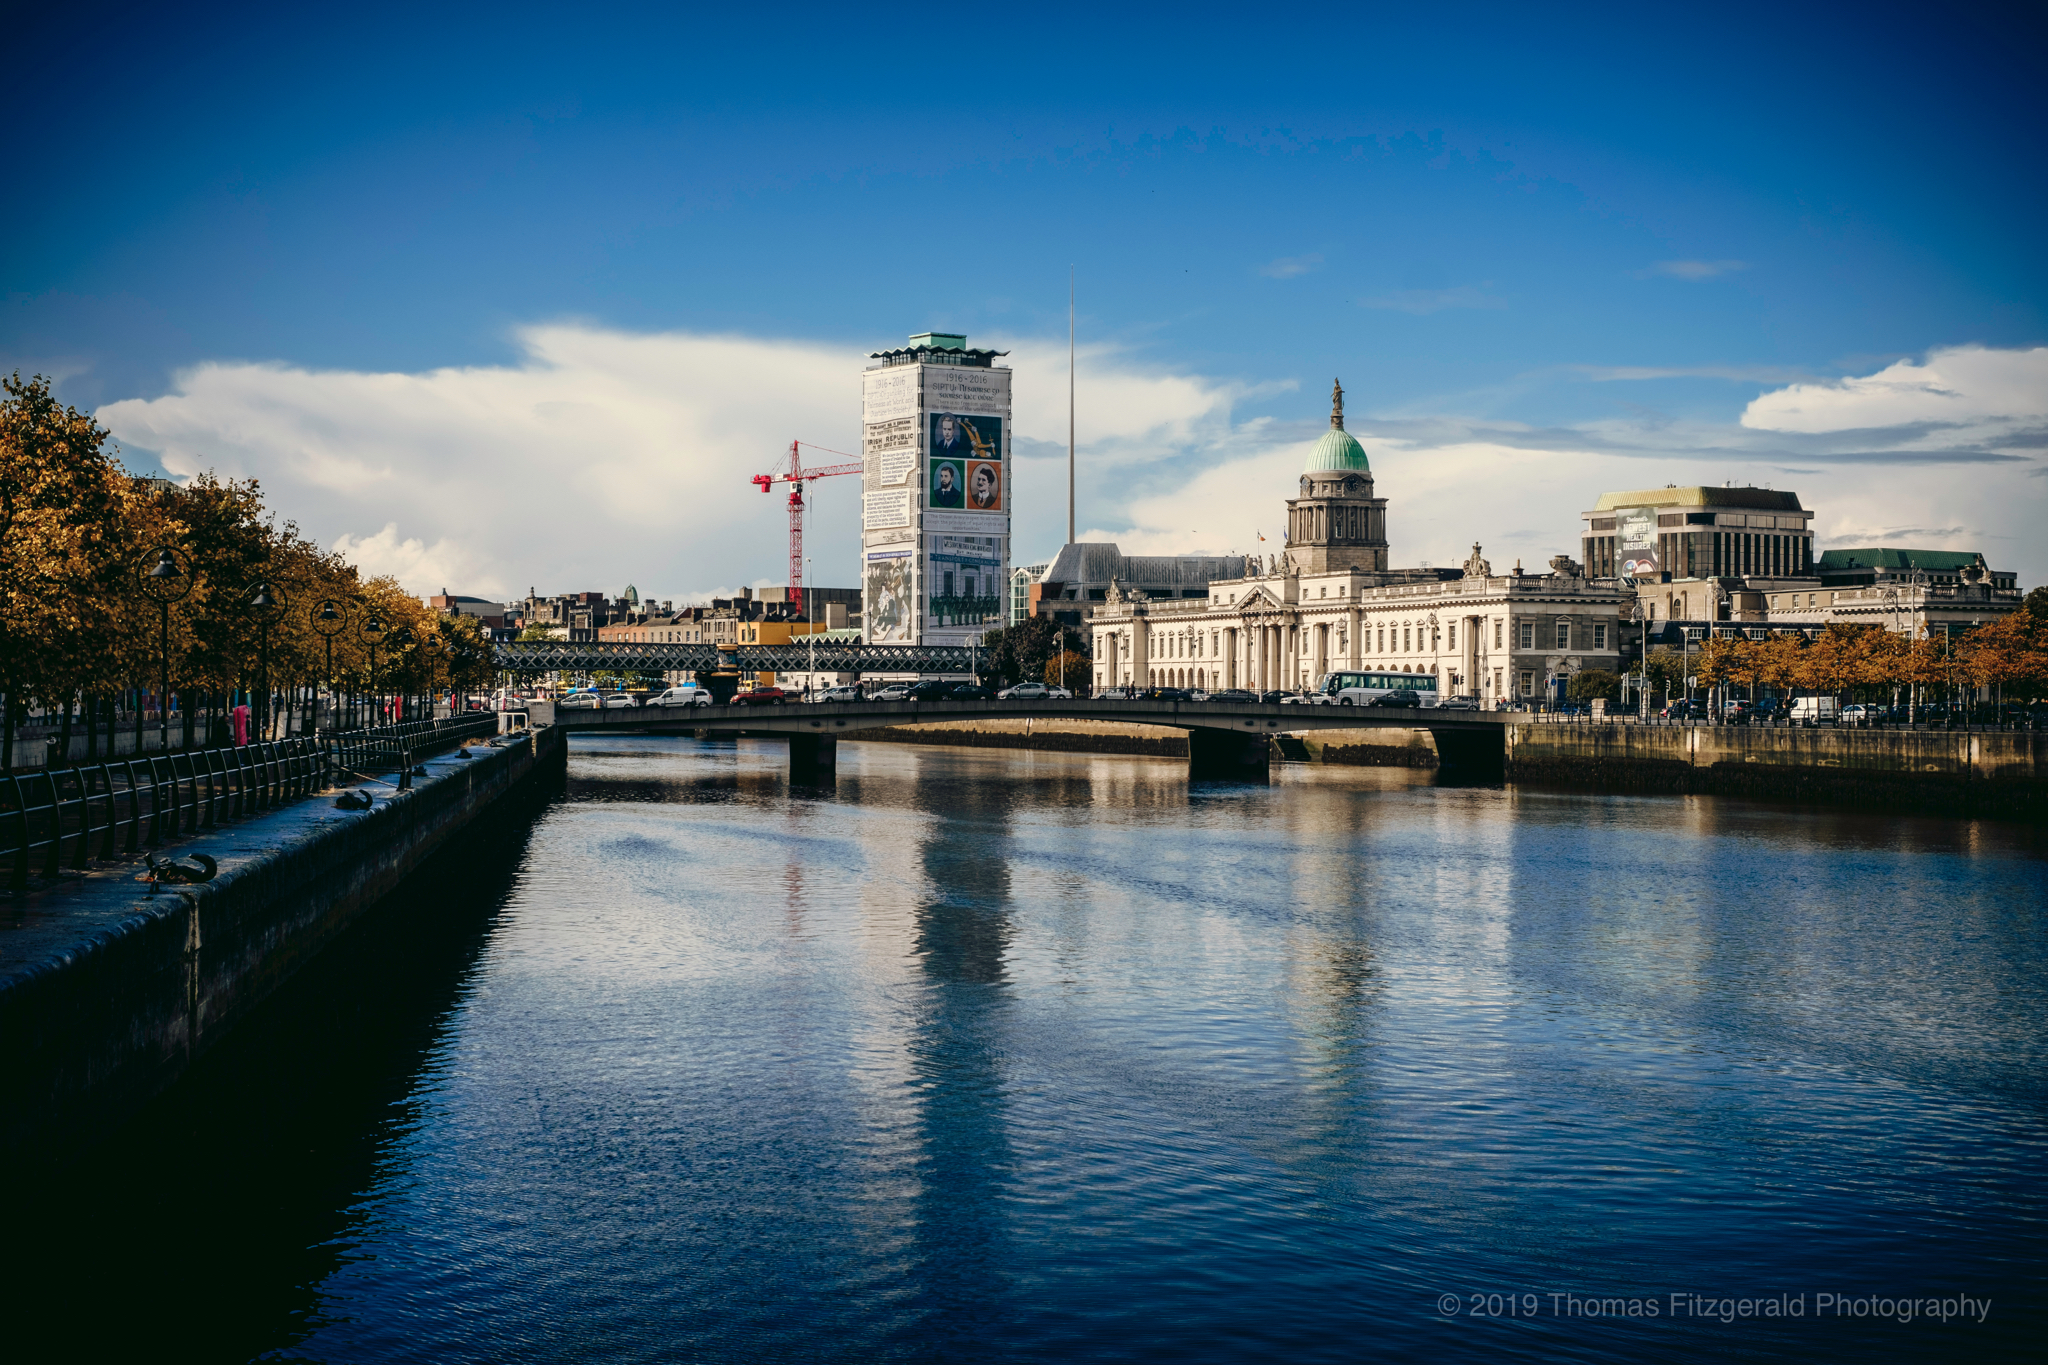 The Custom House and The Liffey